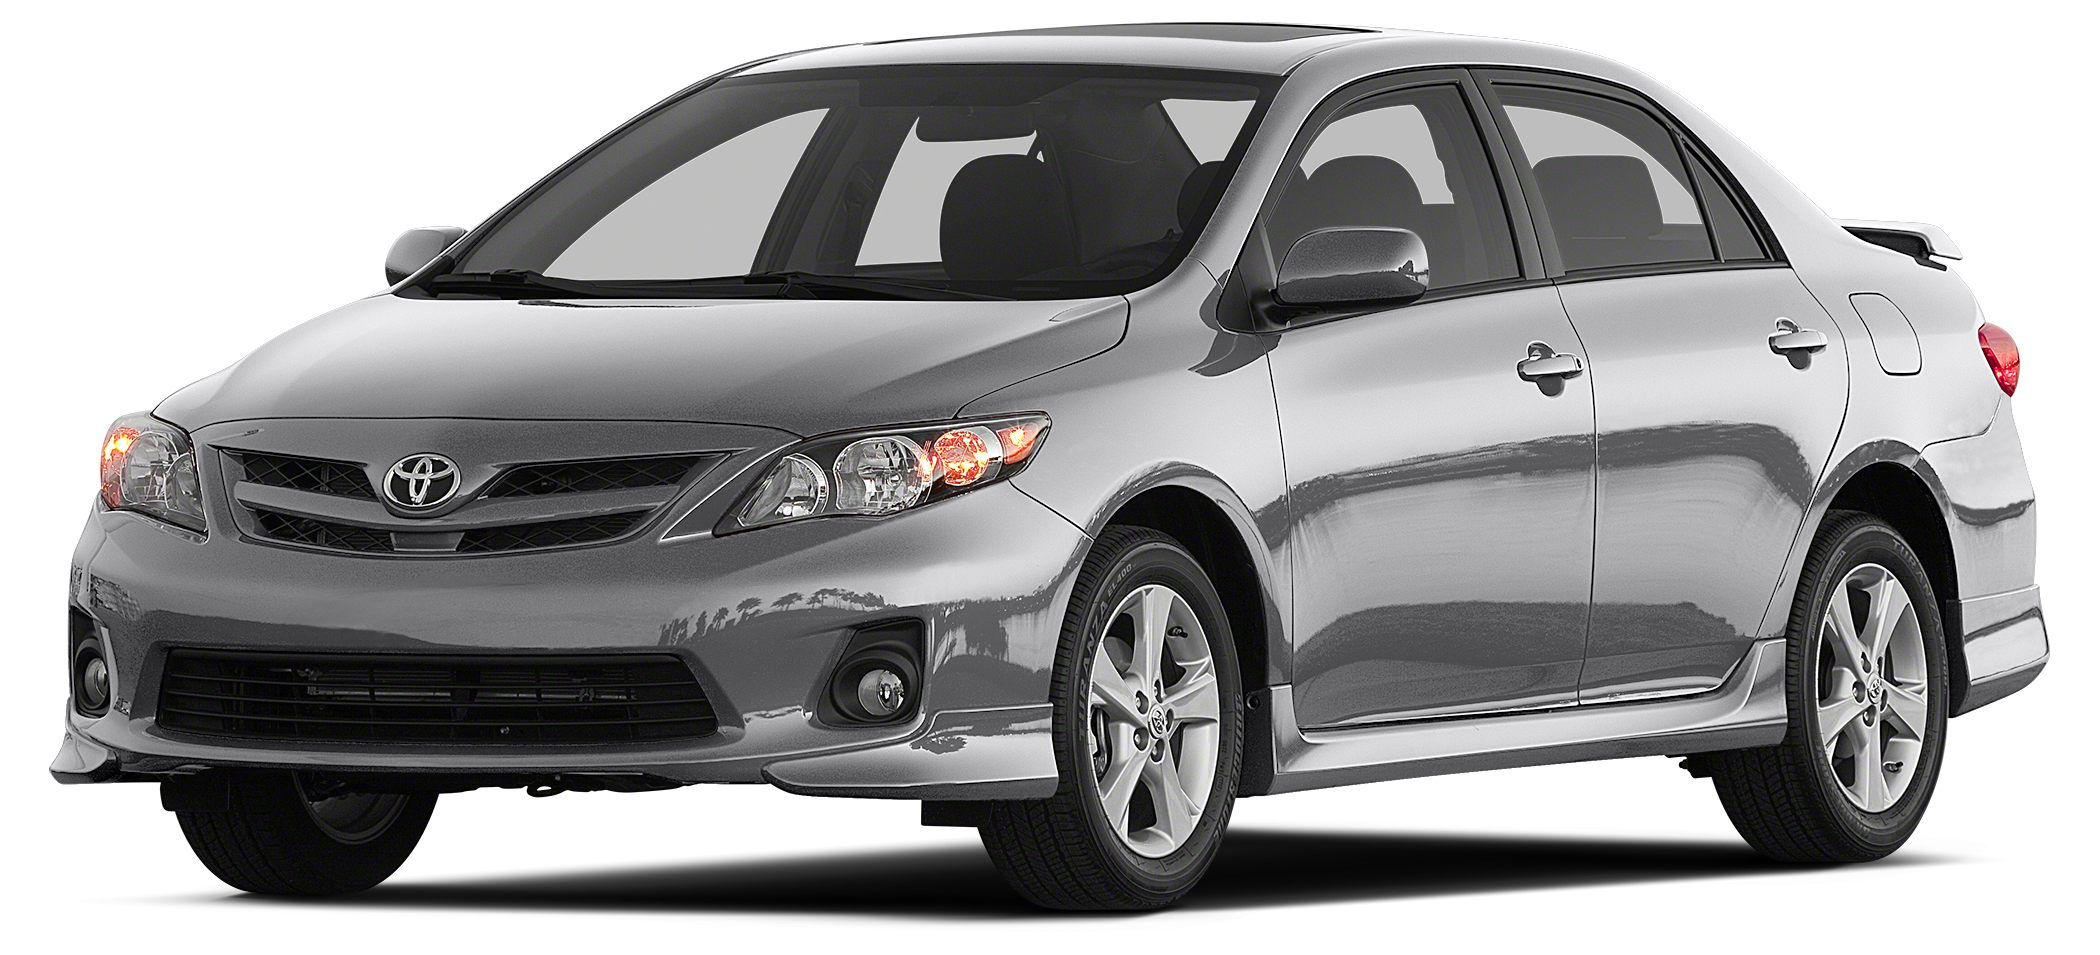 2013 Toyota Corolla S S trim FUEL EFFICIENT 34 MPG Hwy26 MPG City CARFAX 1-Owner GREAT MILES 17